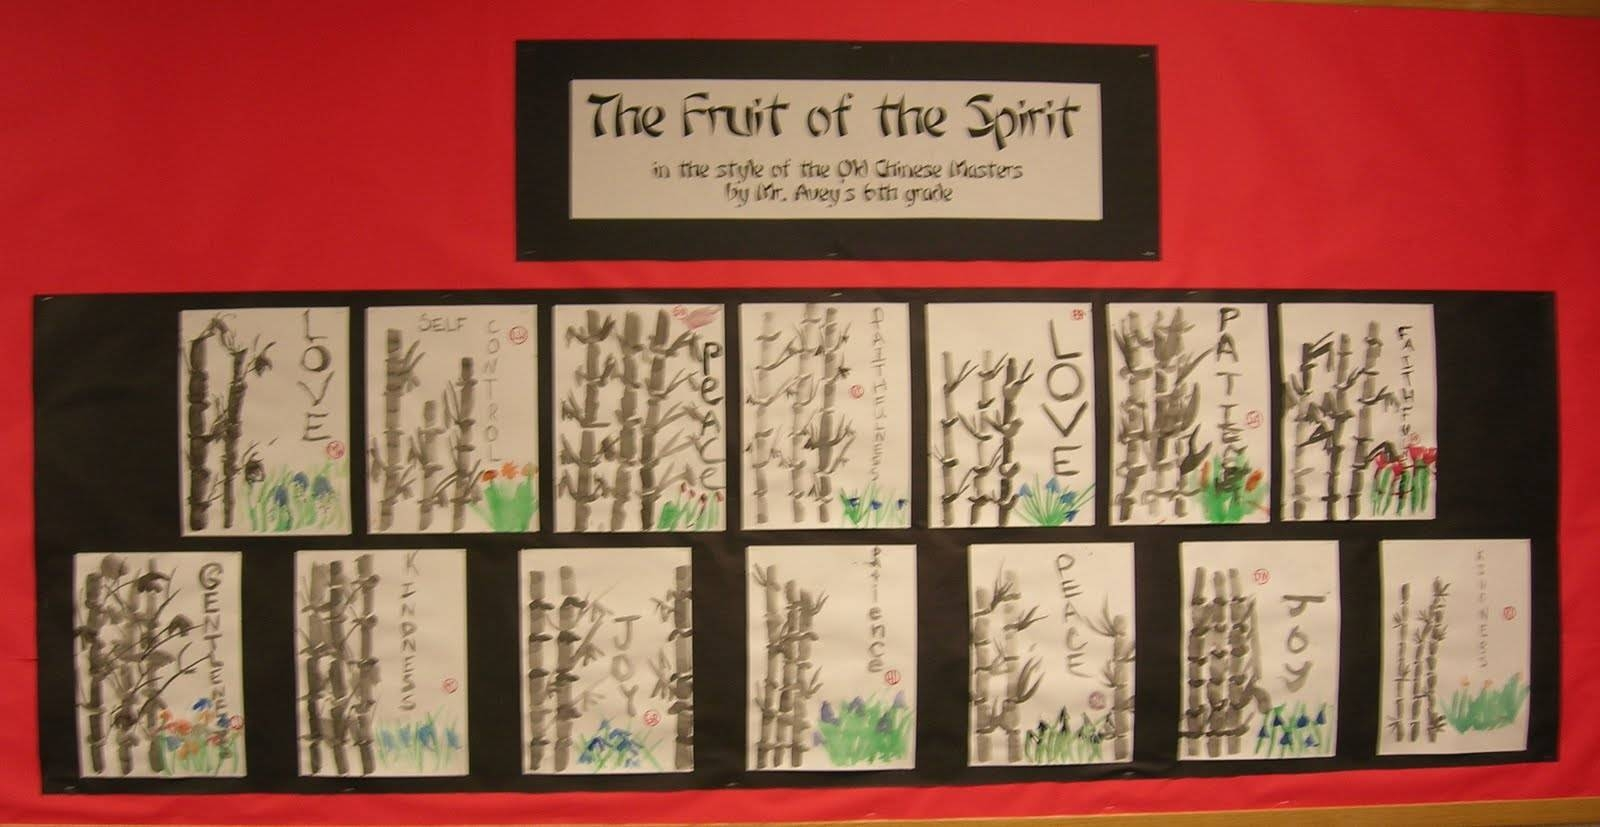 Chinese Brush Painting | Teachkidsart Intended For Best And Newest Fruit Of The Spirit Artwork (View 8 of 30)